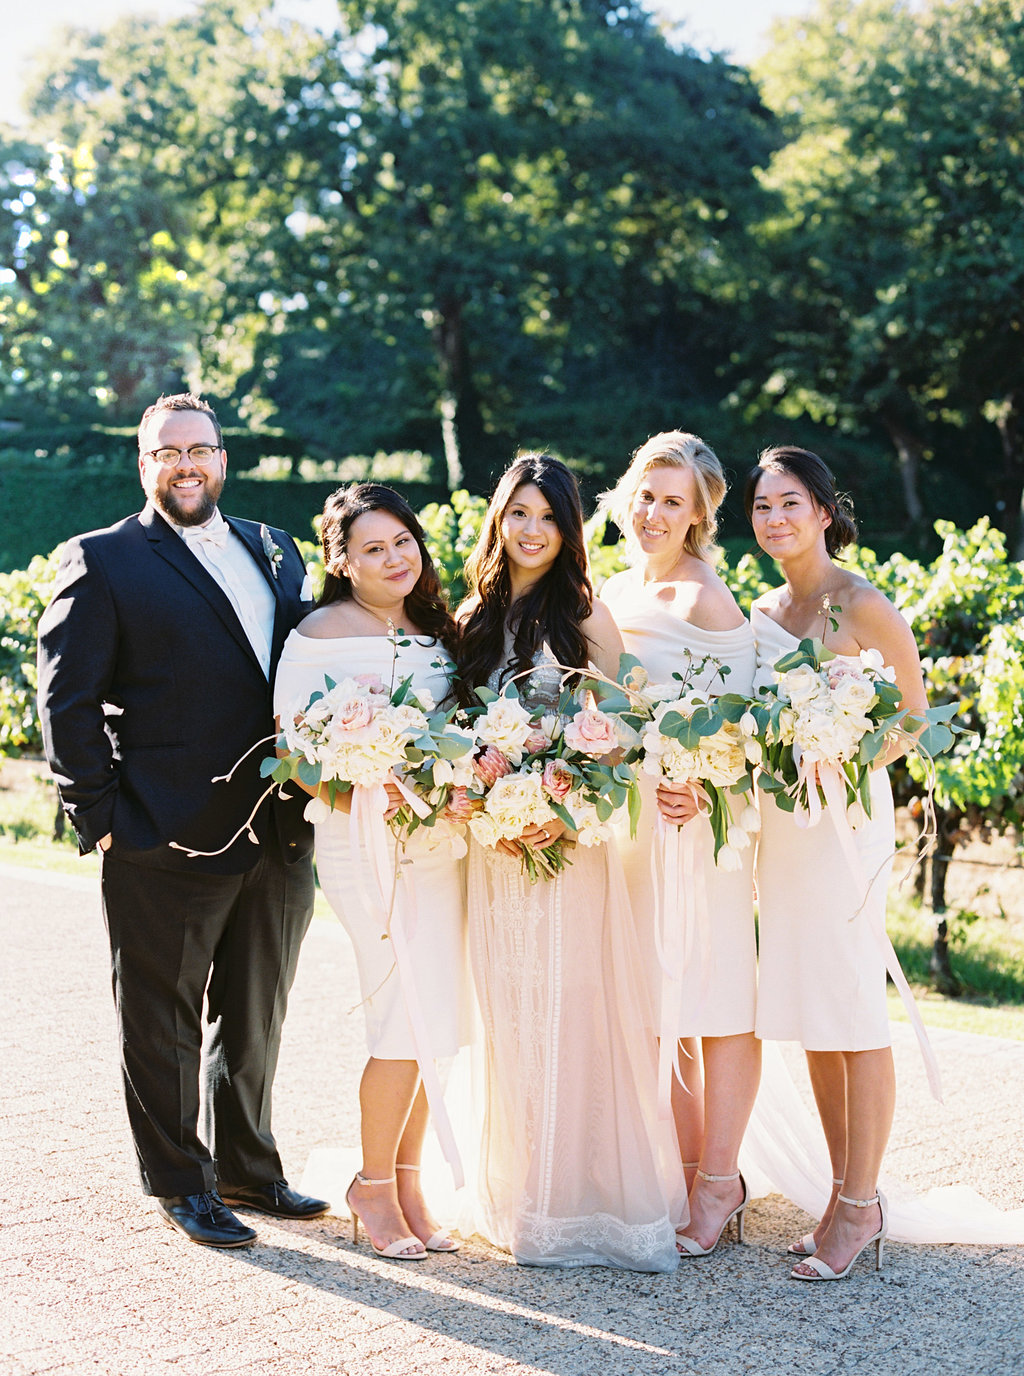 KatieGrantPhotography(33of50).jpg